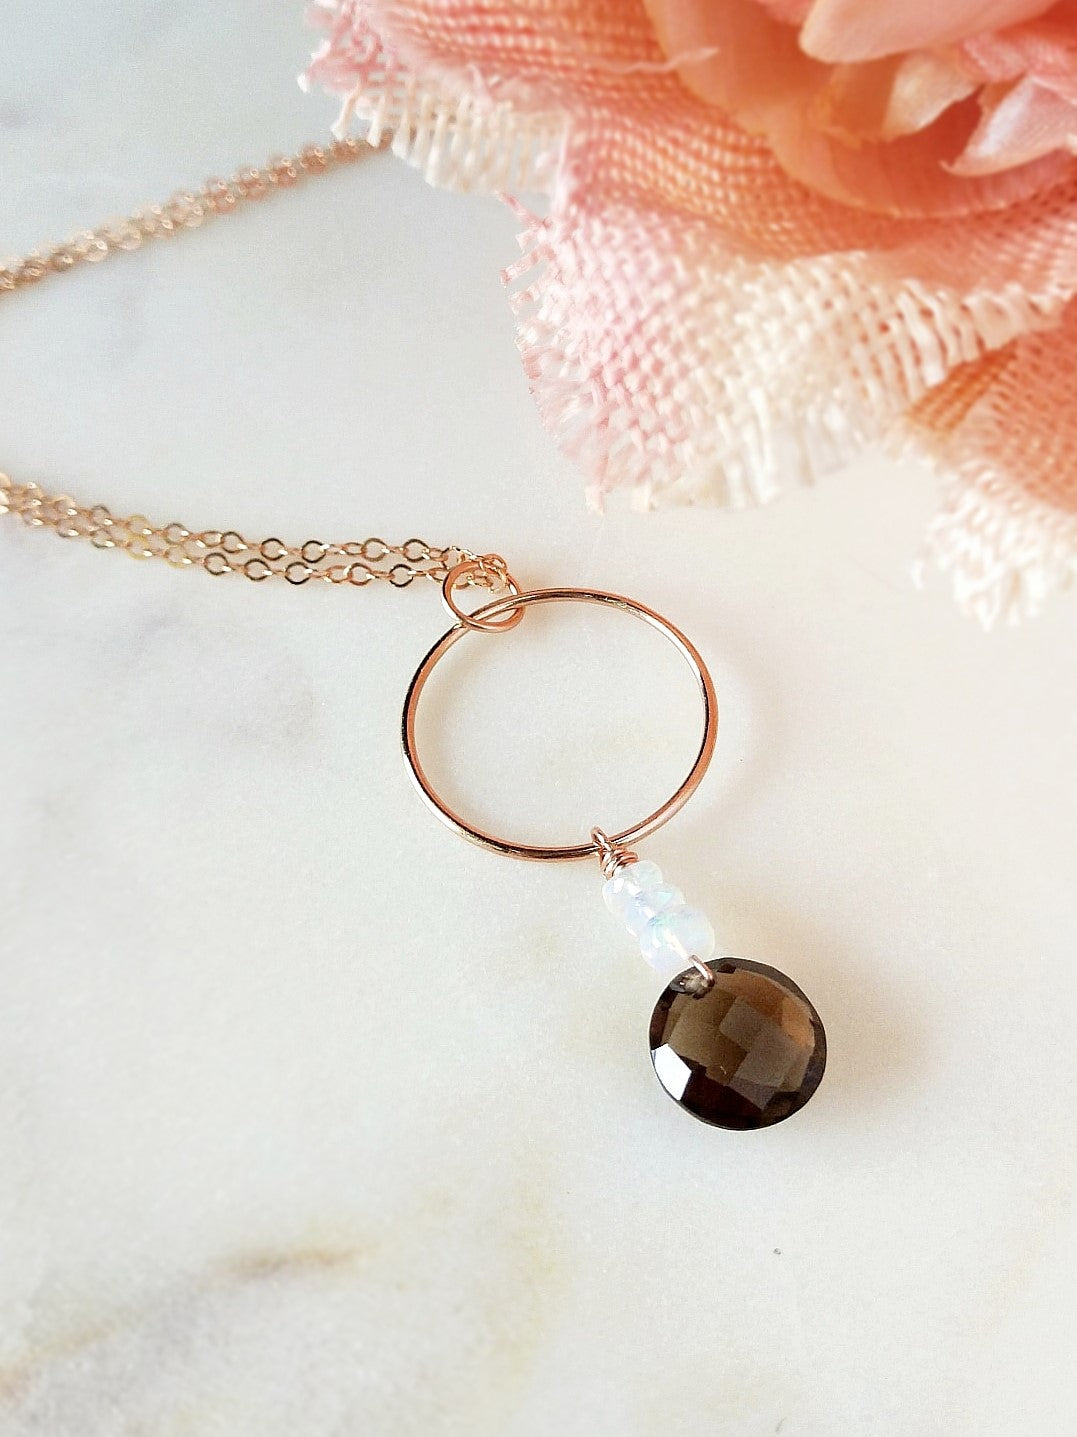 smoke stack necklace featuring smoky quartz, welo ethiopian opals, and rose gold by Rare Soul accessories.